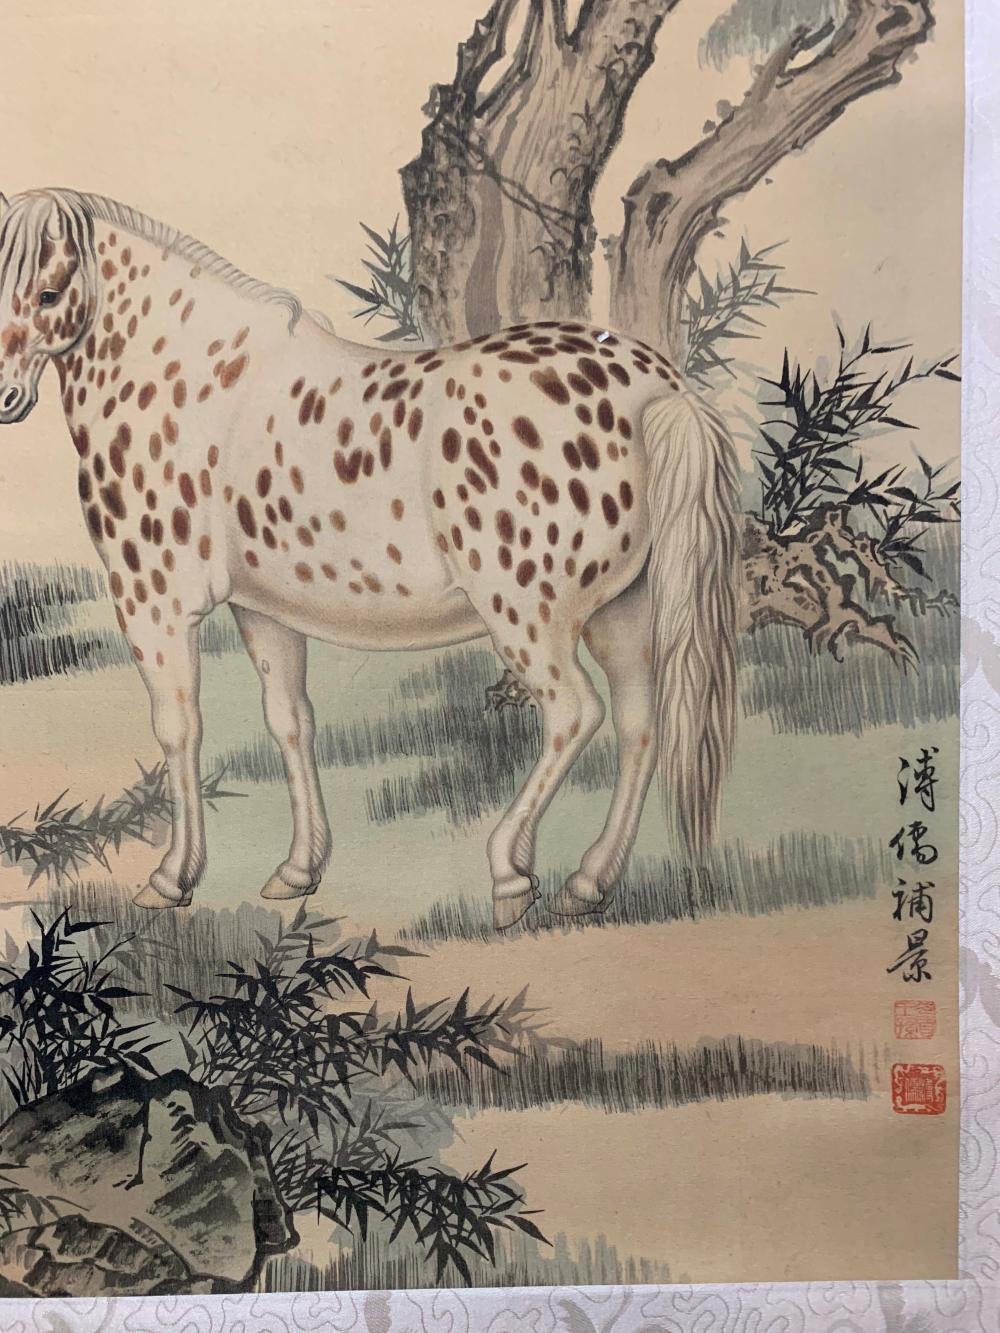 Sold Price A Chinese Horse Painting Puru Mark July 3 0120 8 00 Pm Edt